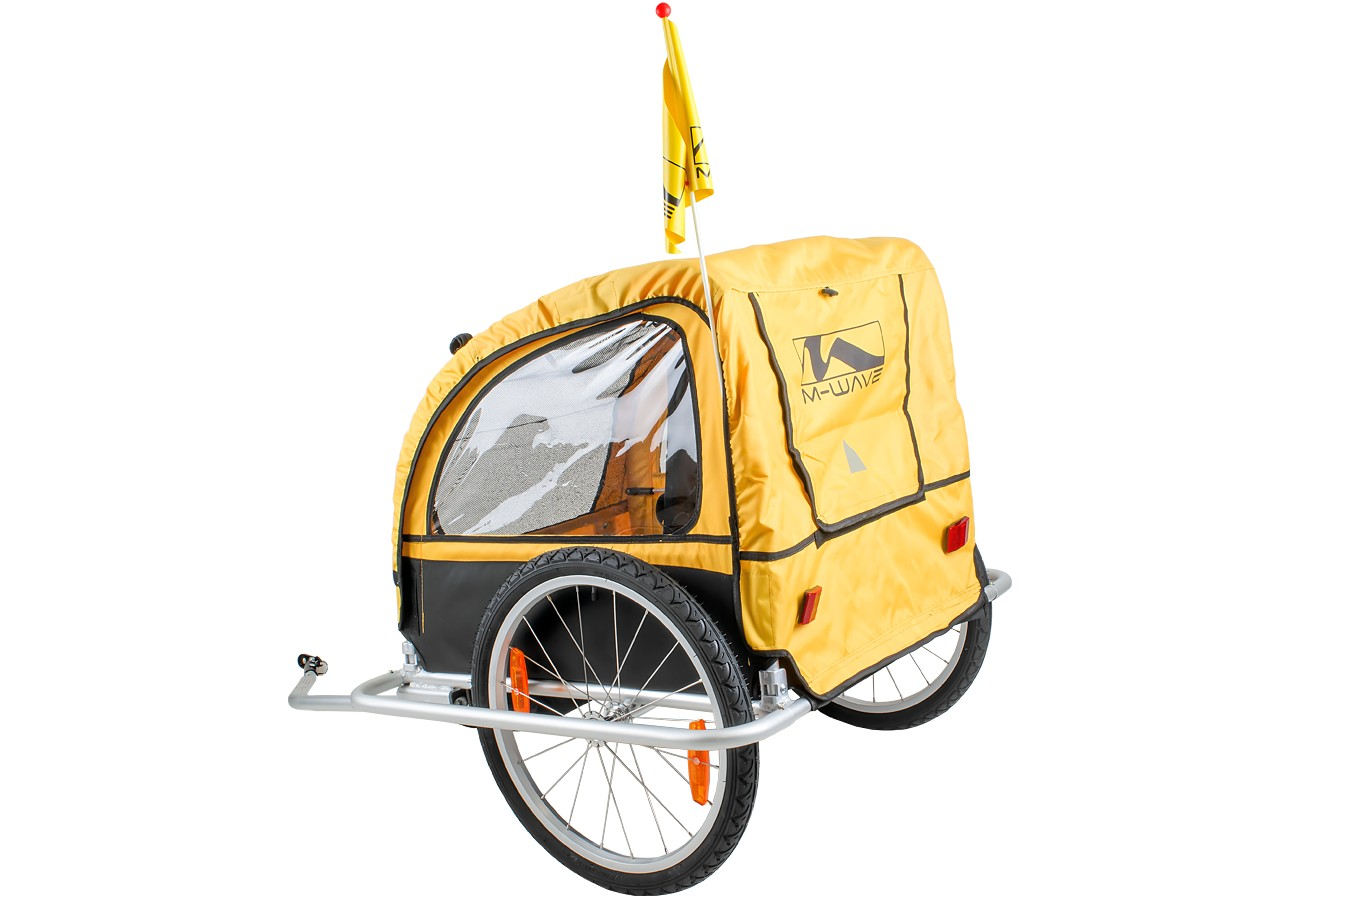 Reboque Transporte Infantil Bike Trailer Com Engate - M-Wave